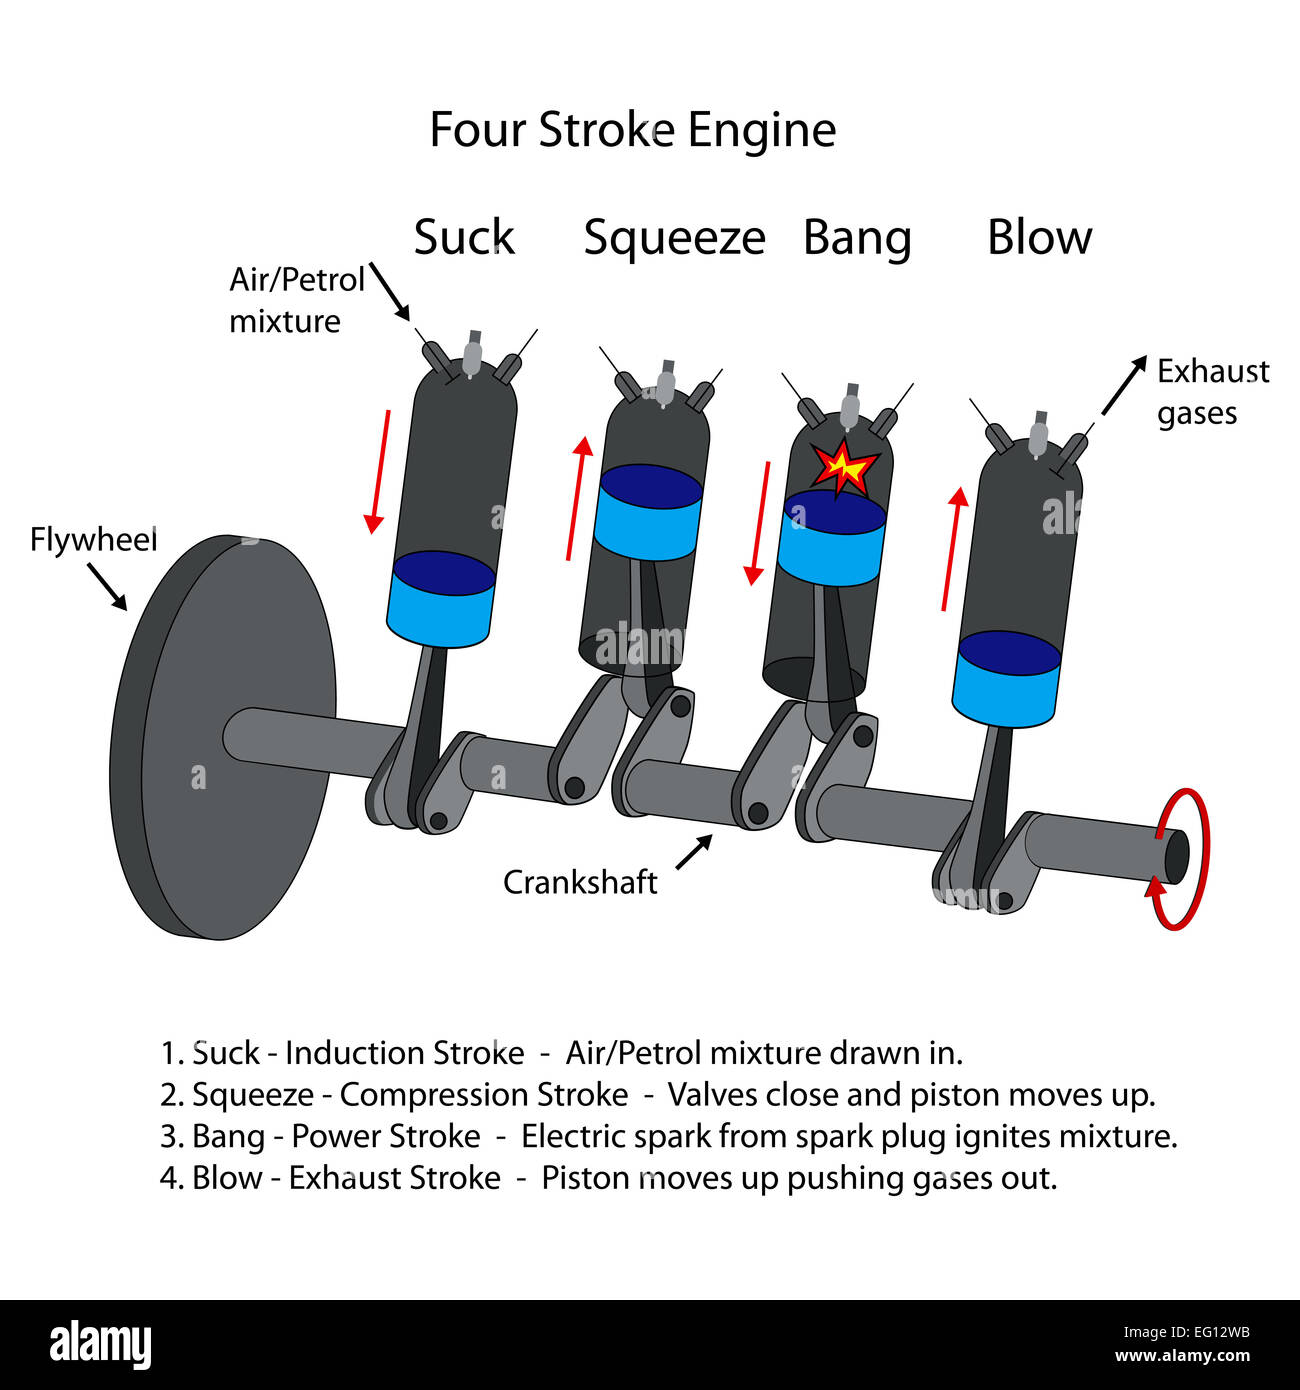 car engine diagram stock photos car engine diagram stock images labeled diagram of four stroke internal combustion engine stock image